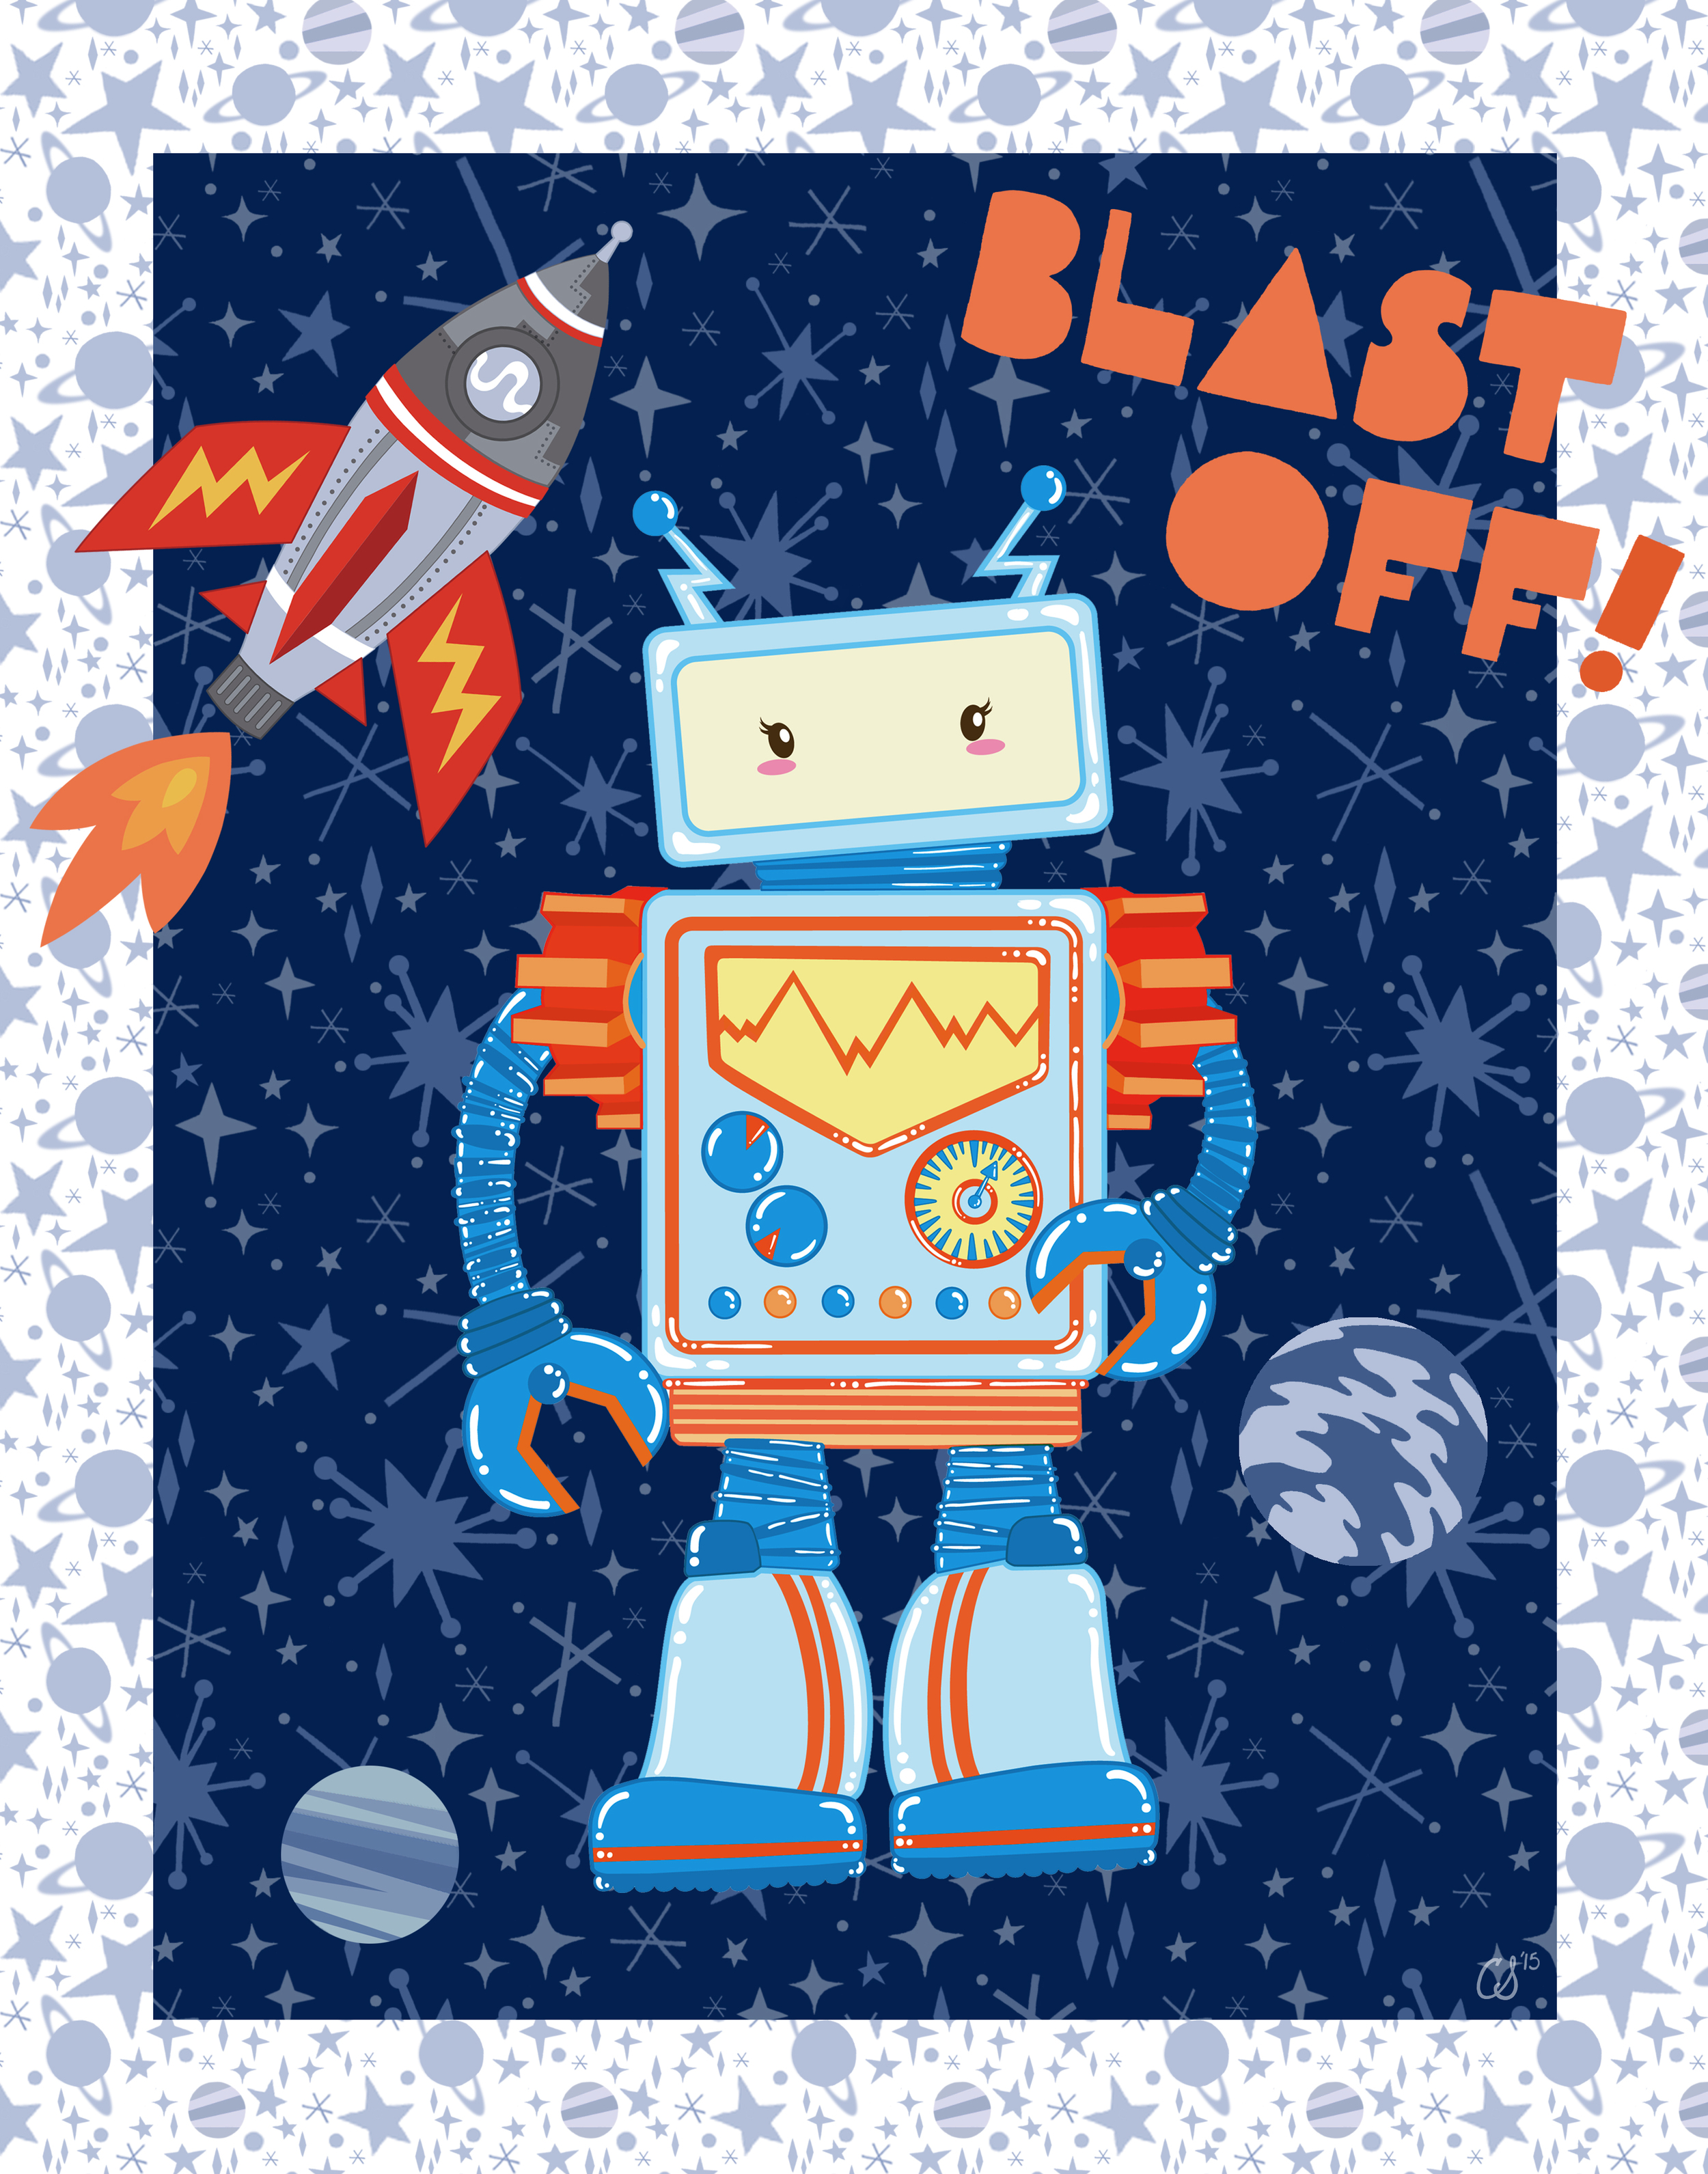 Blast Off Robot  image created for Art in Motion.  artinmotion.com .  This image is available for  publishing  purposes.